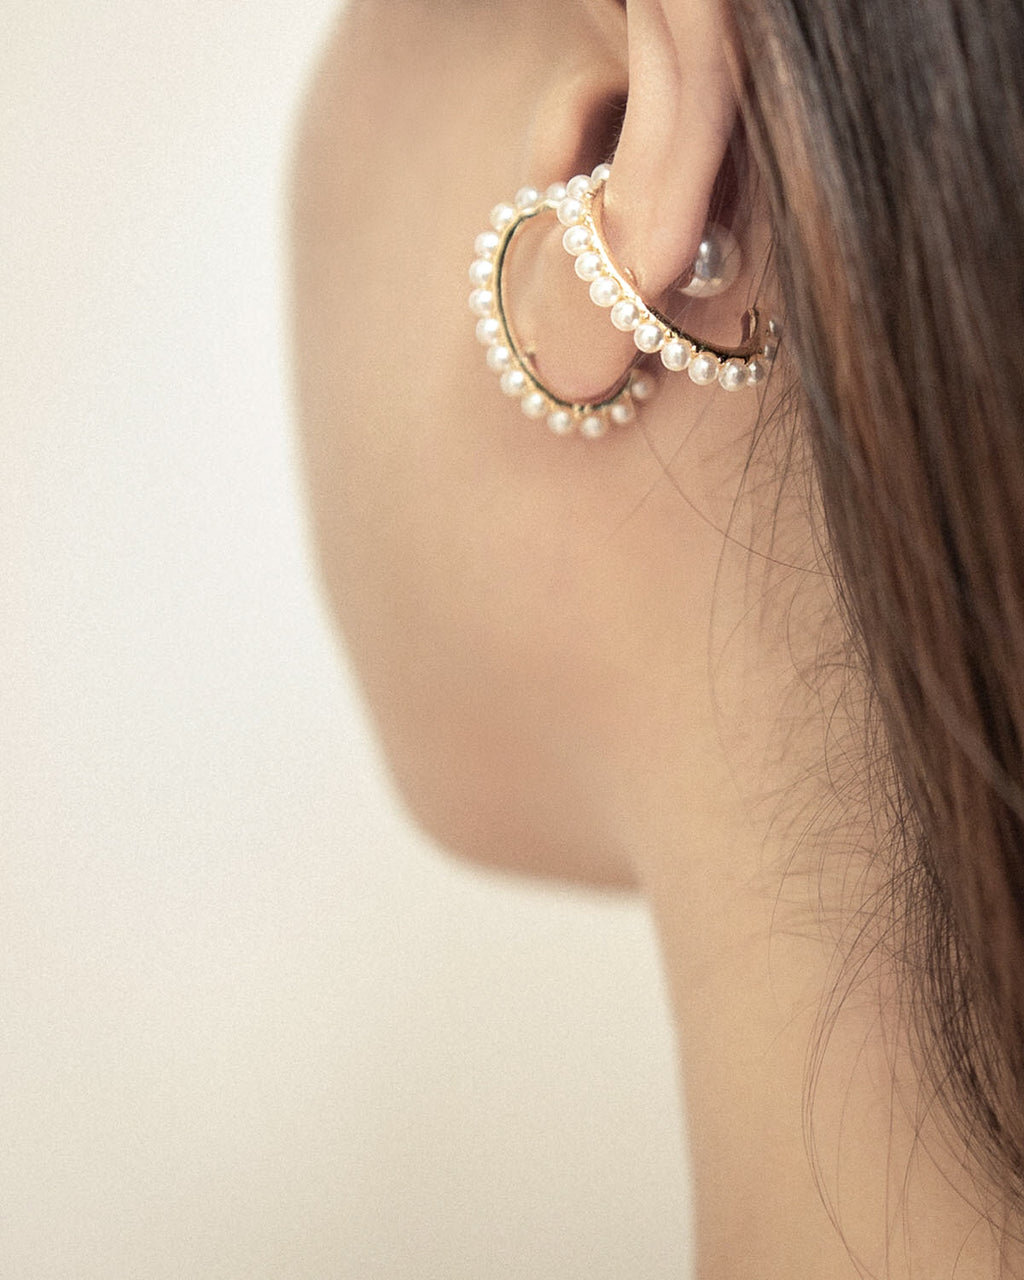 Yvette suspender earrings with a pearl ear backing - The Hexad